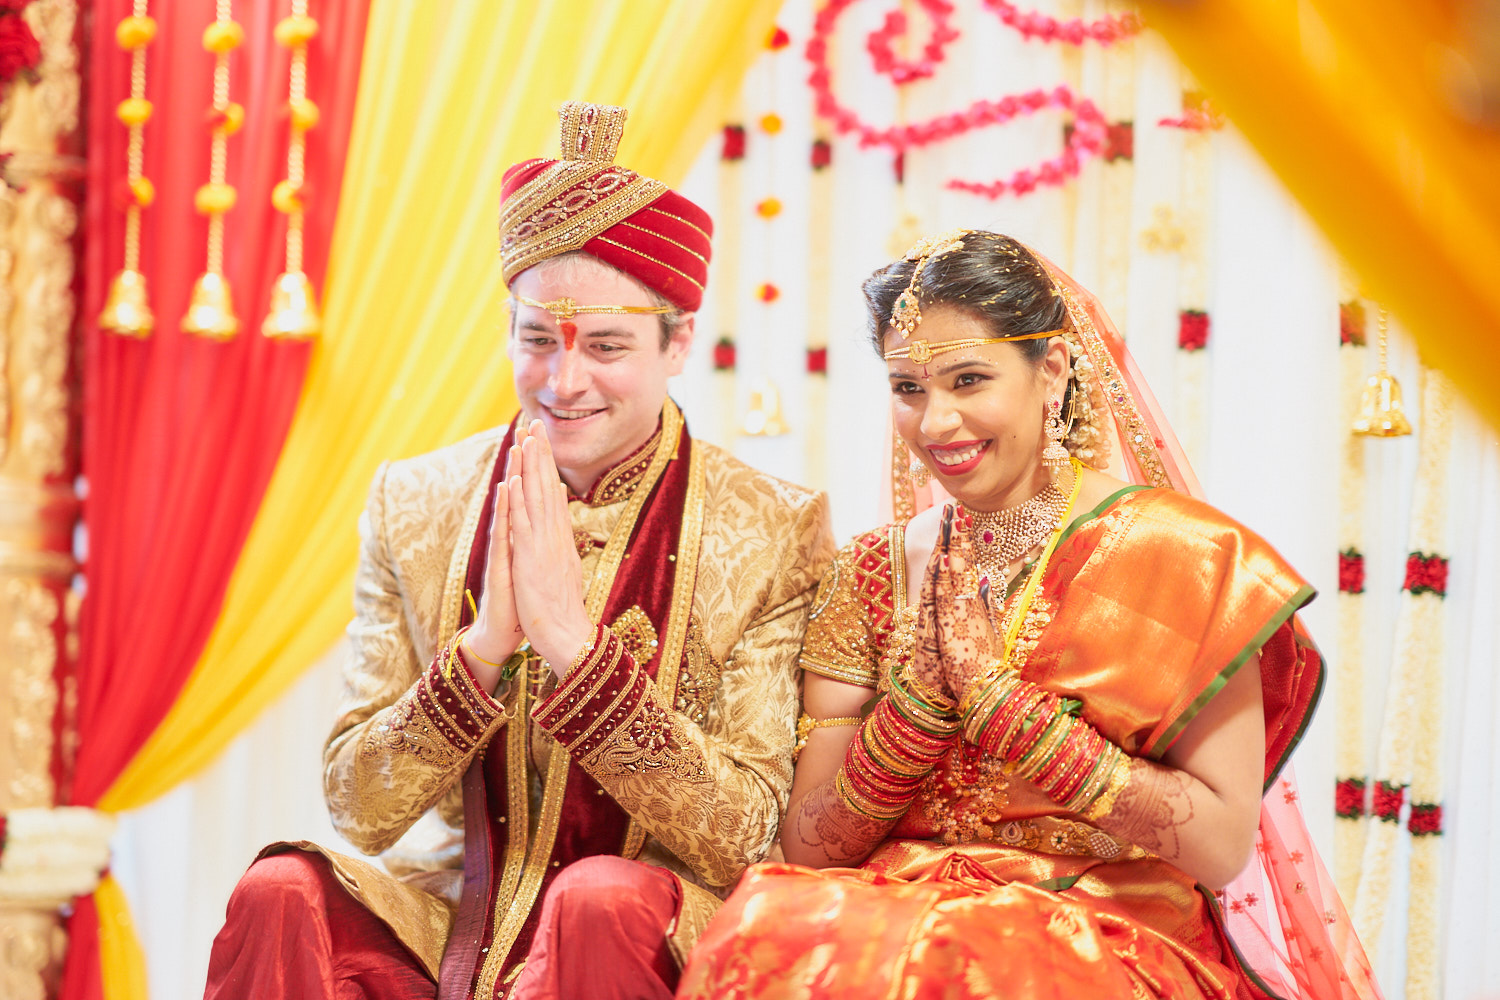 south-indian-wedding-ceremony-photography-by-afewgoodclicks-net-in-saratoga